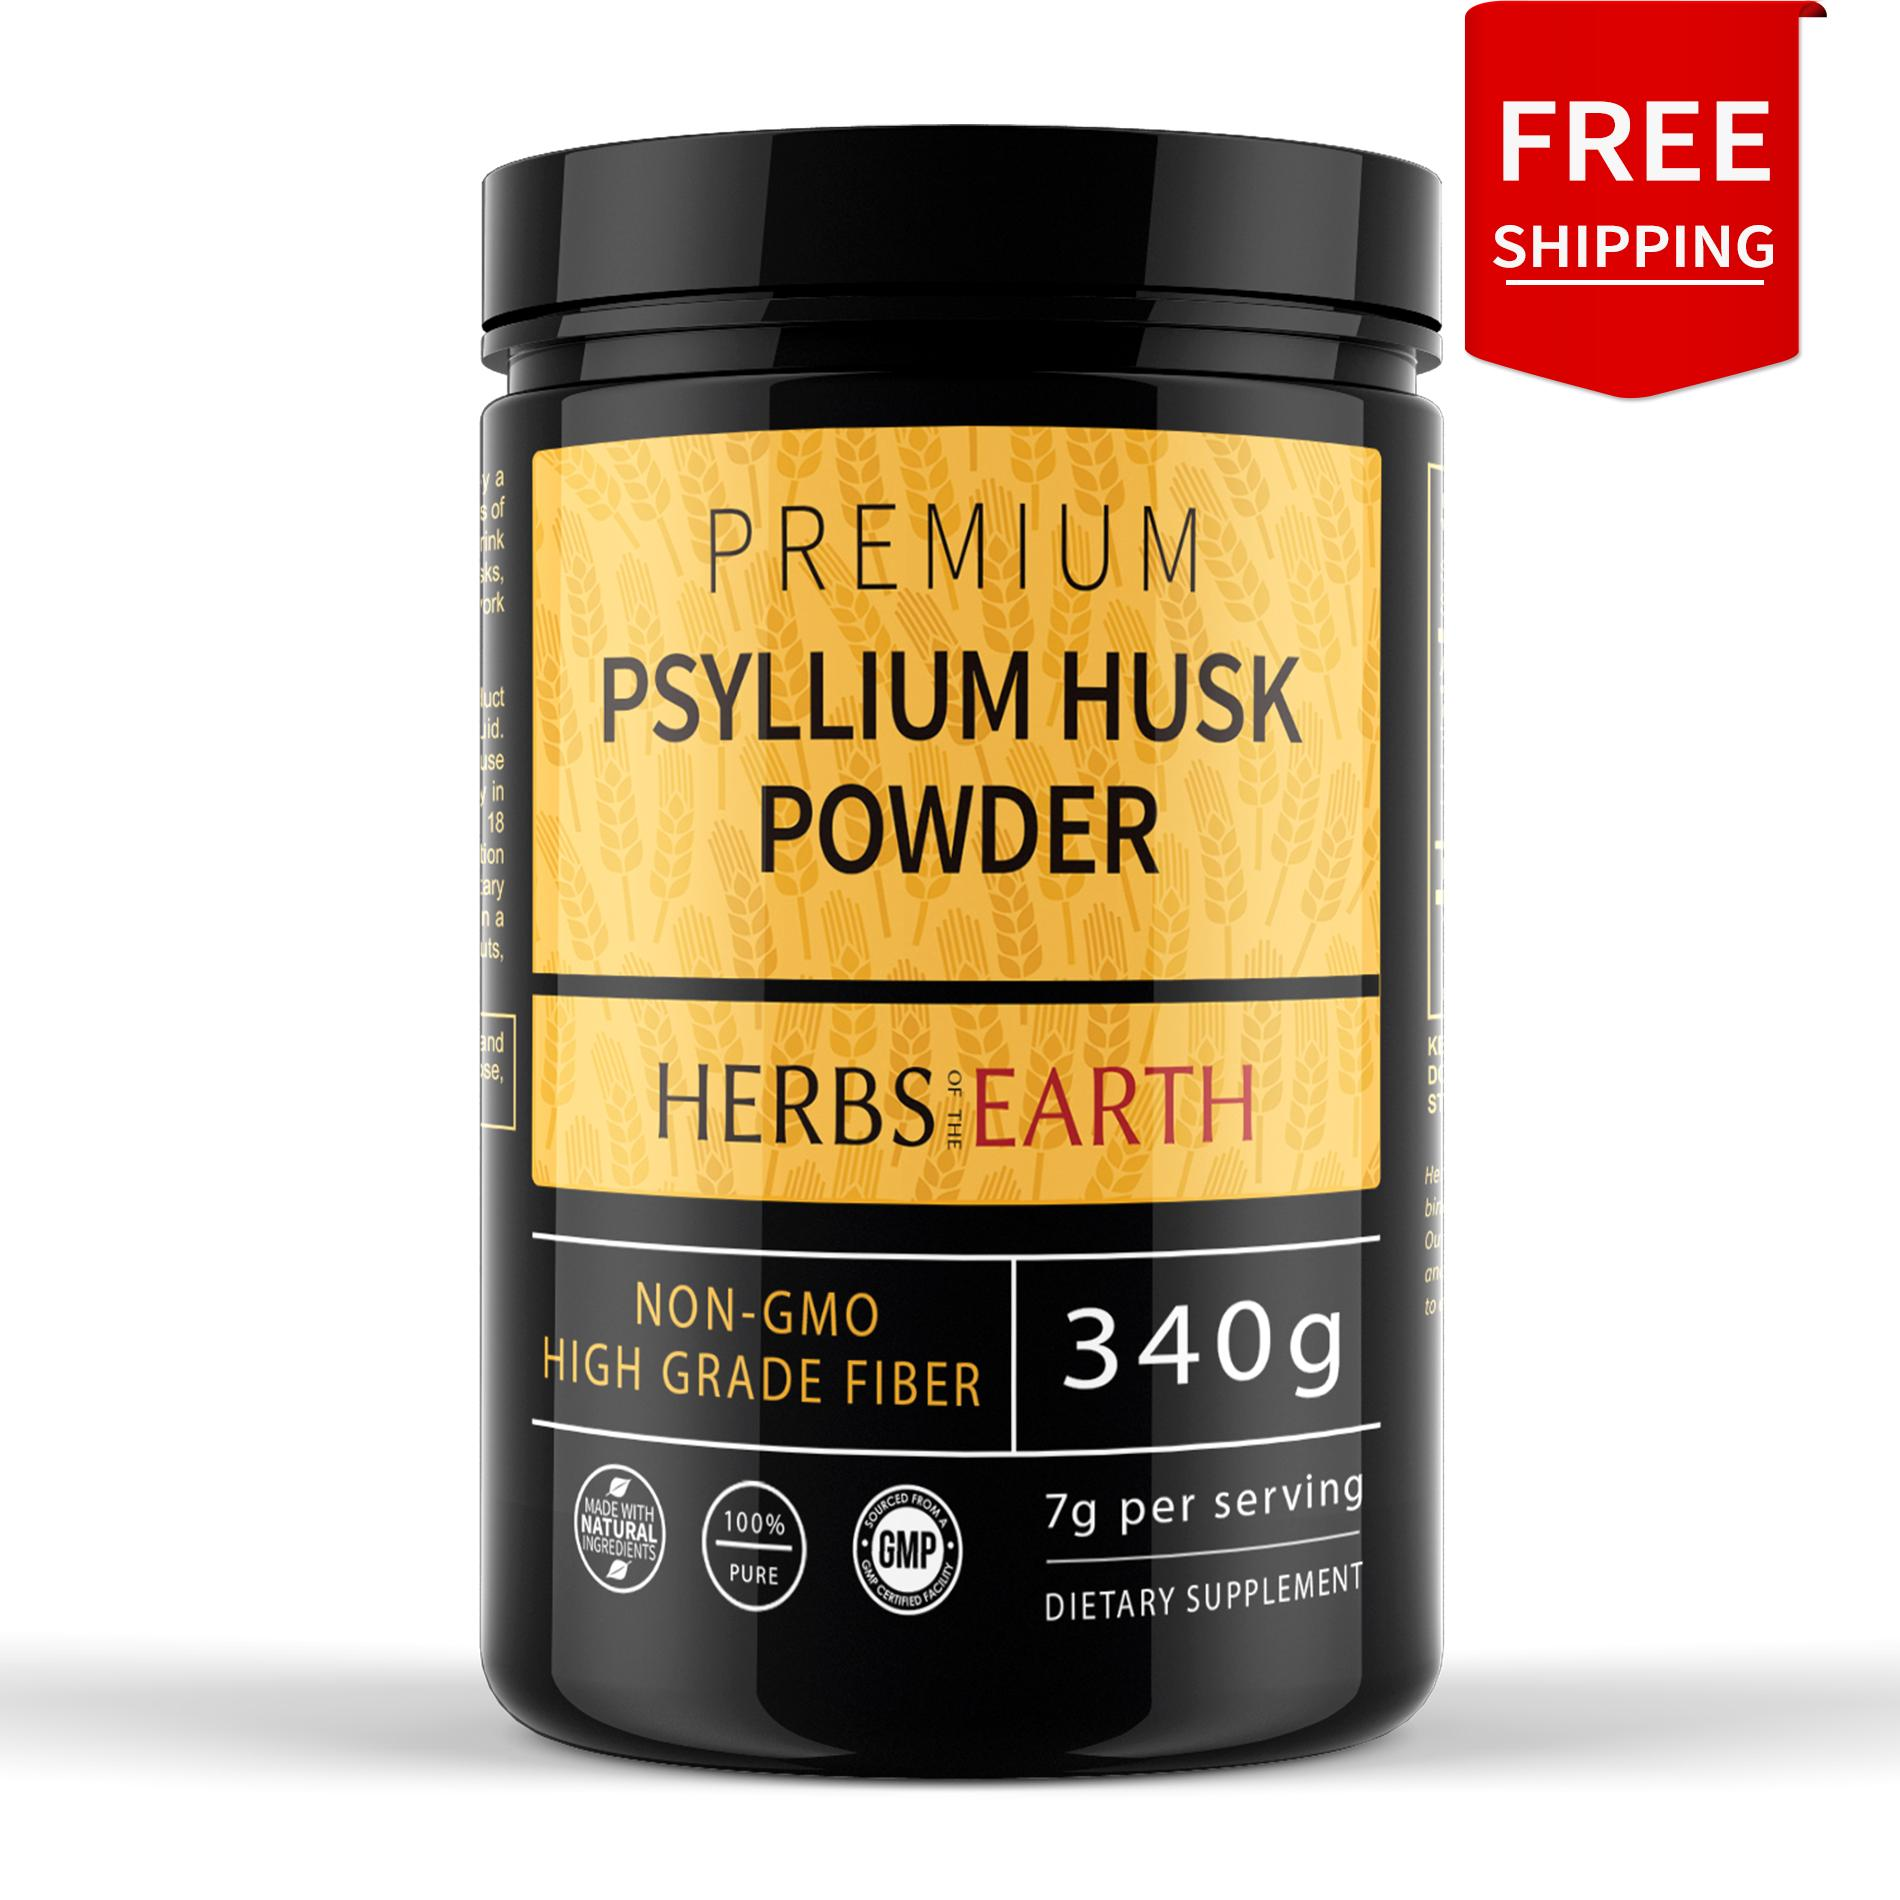 Psyllium Husk Powder, 340G Premium Fiber, NON-GMO, Perfect for Keto Bread,  Digestive Cleanse, Healthy Gut, Weight Loss Fibers, 7 Grams per serving,